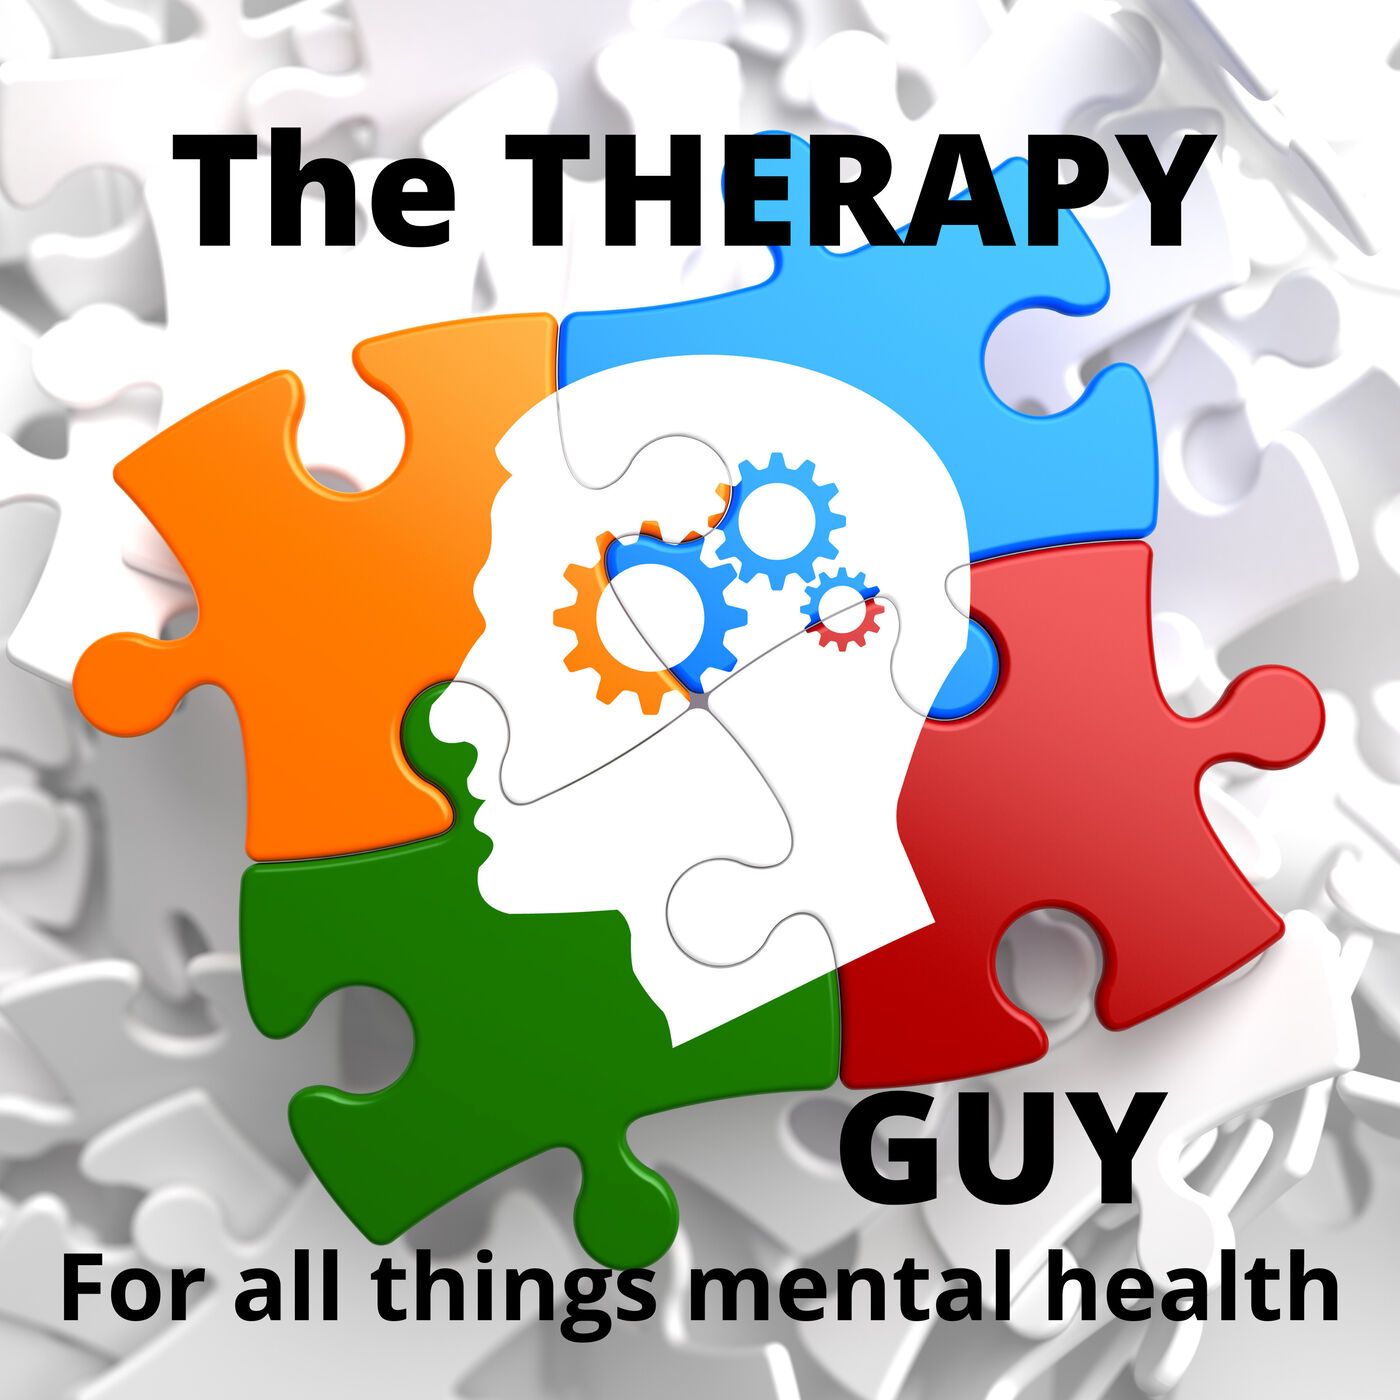 Hello & welcome to the therapy guy!